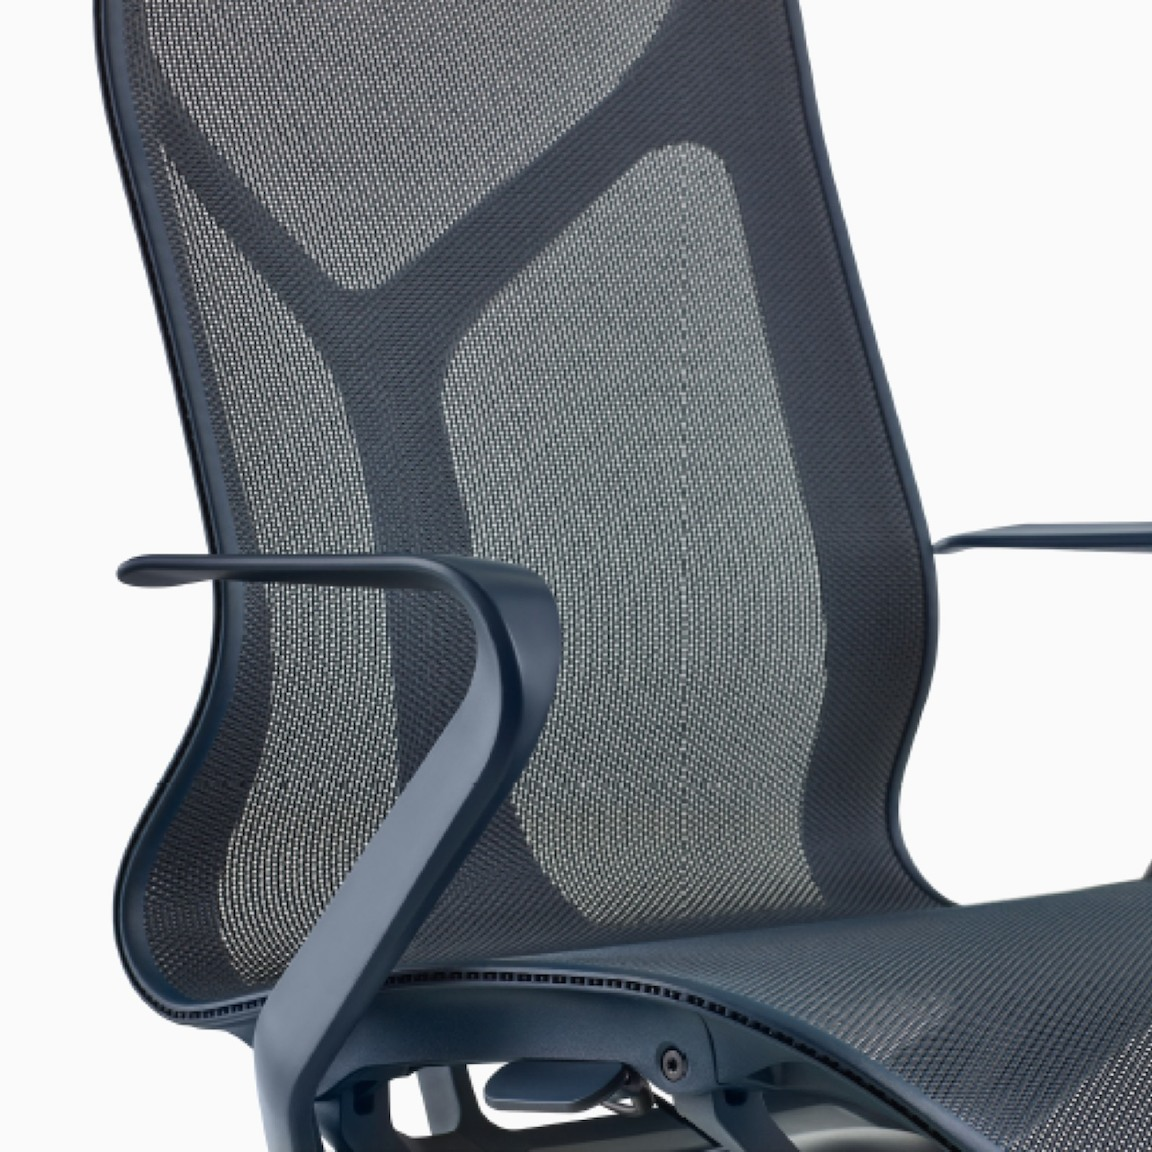 Cosm Chairs